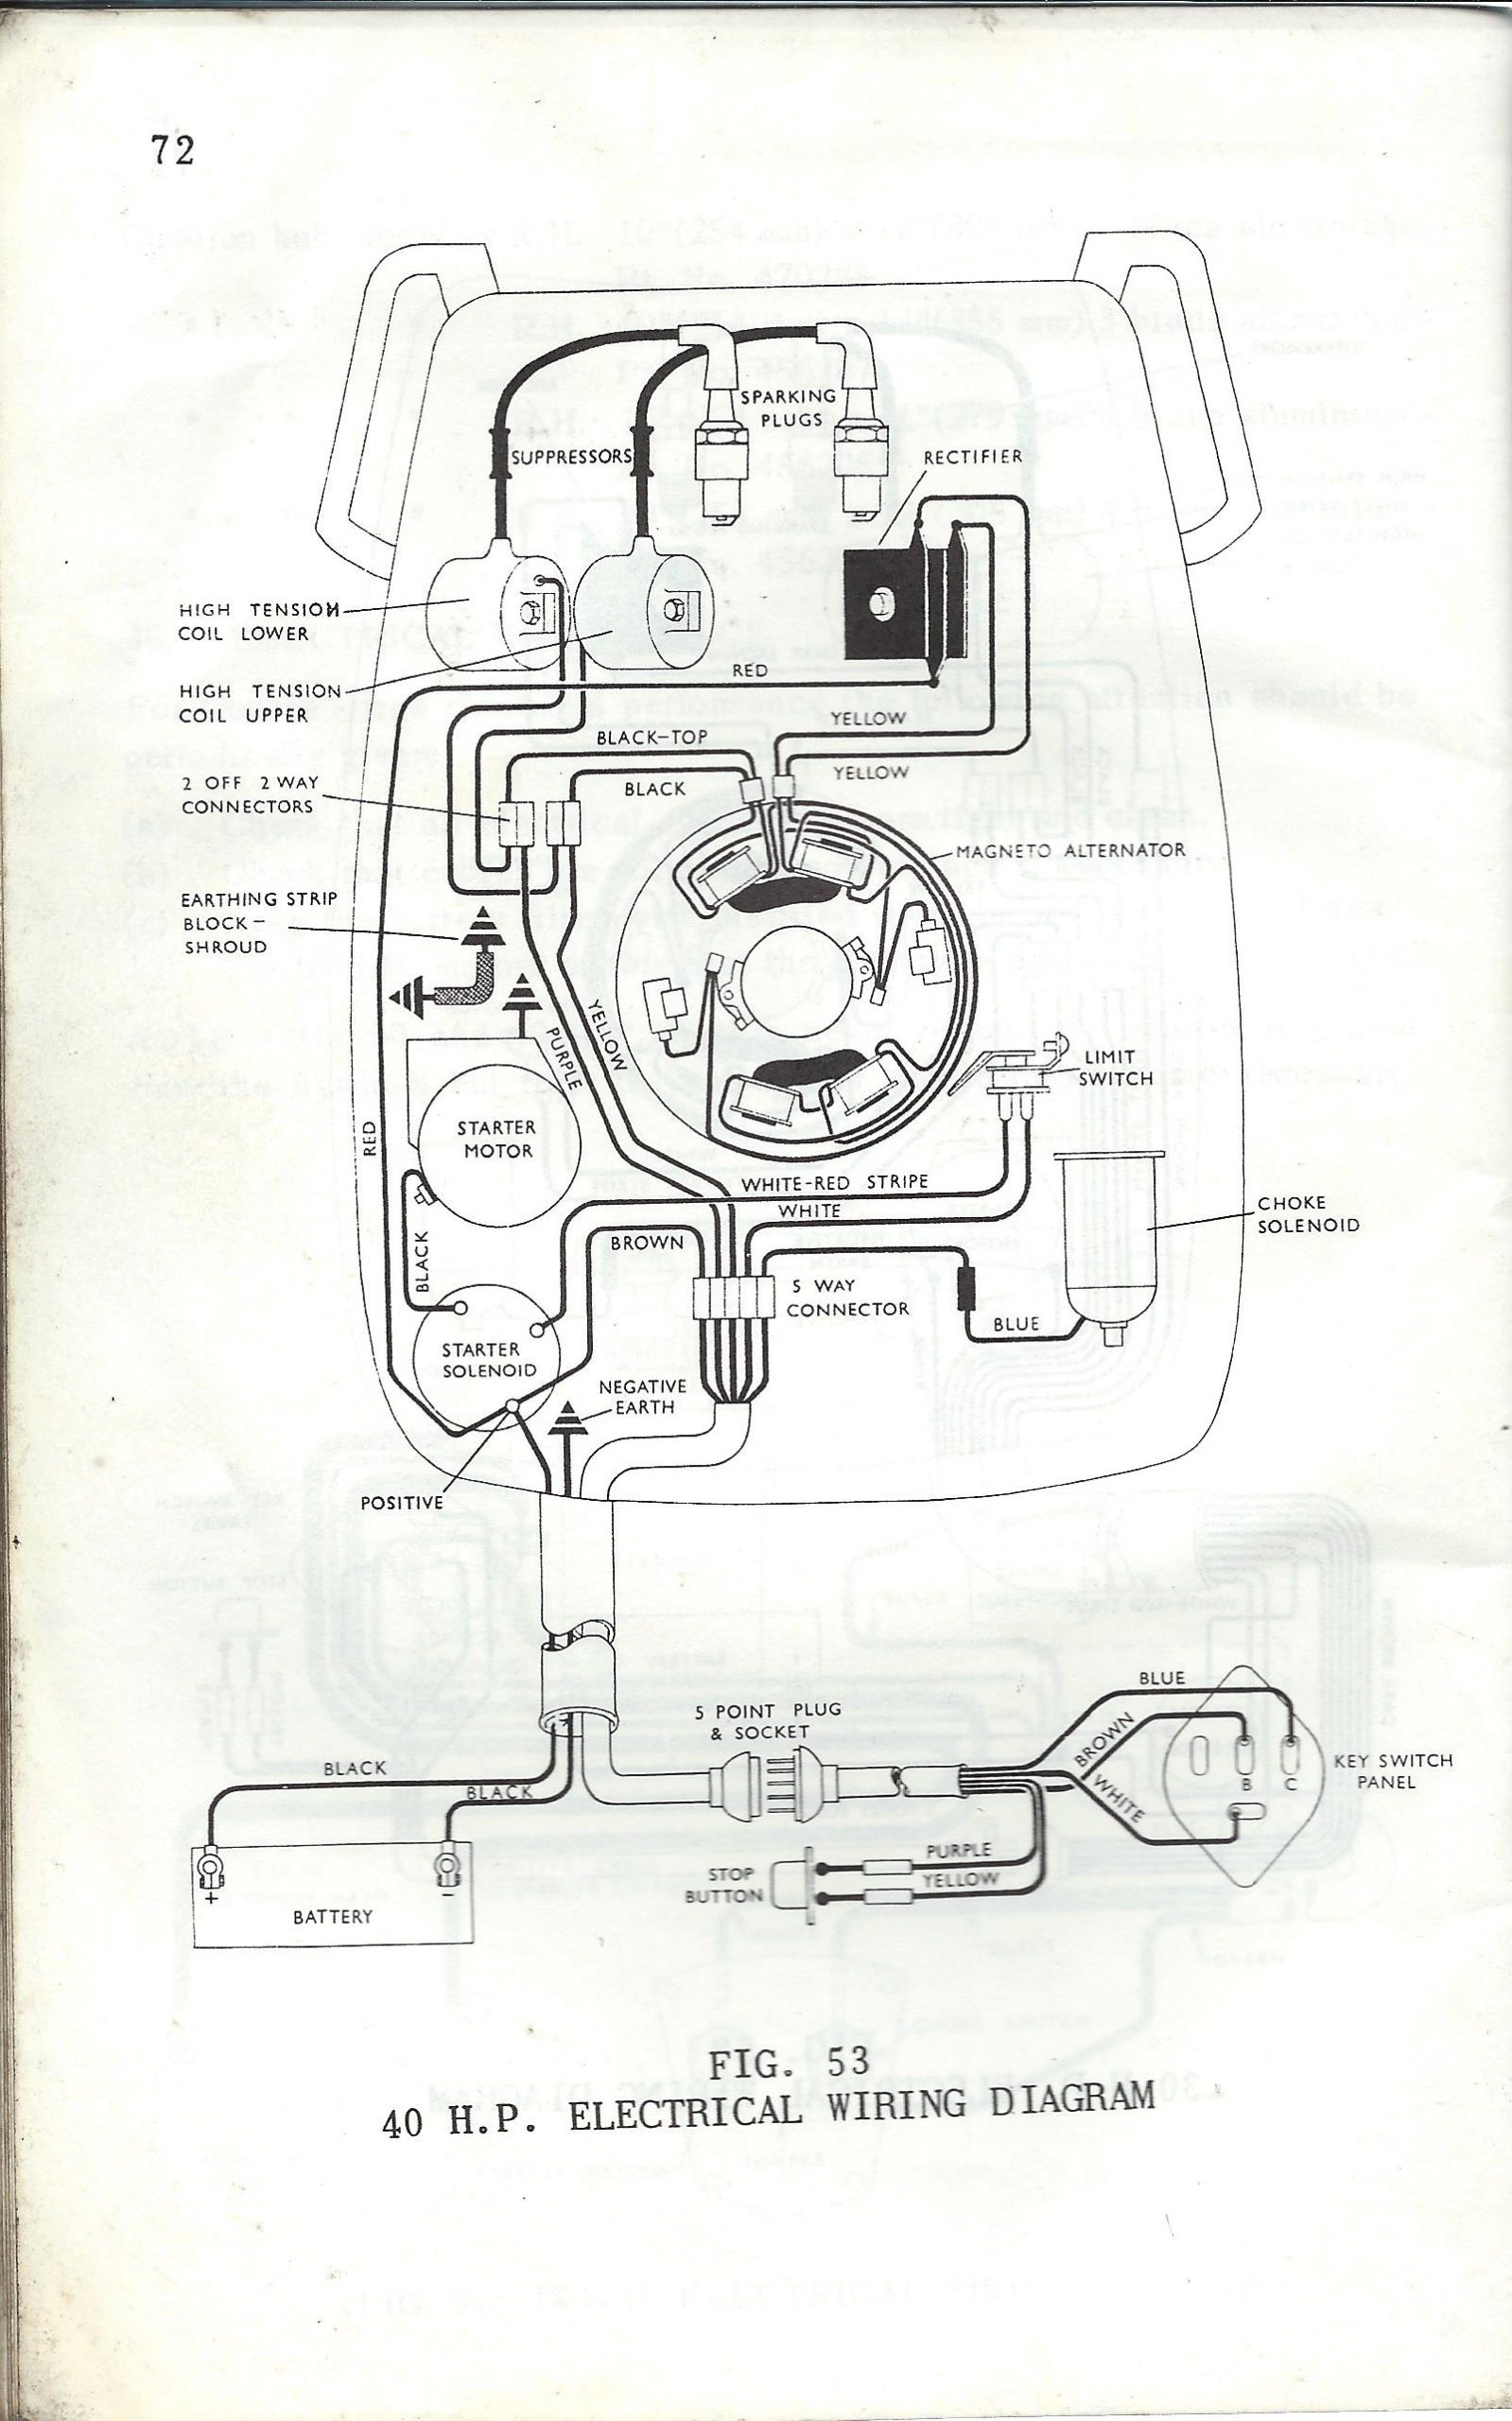 Perkins Owners Guide and Operating Instructions 1964